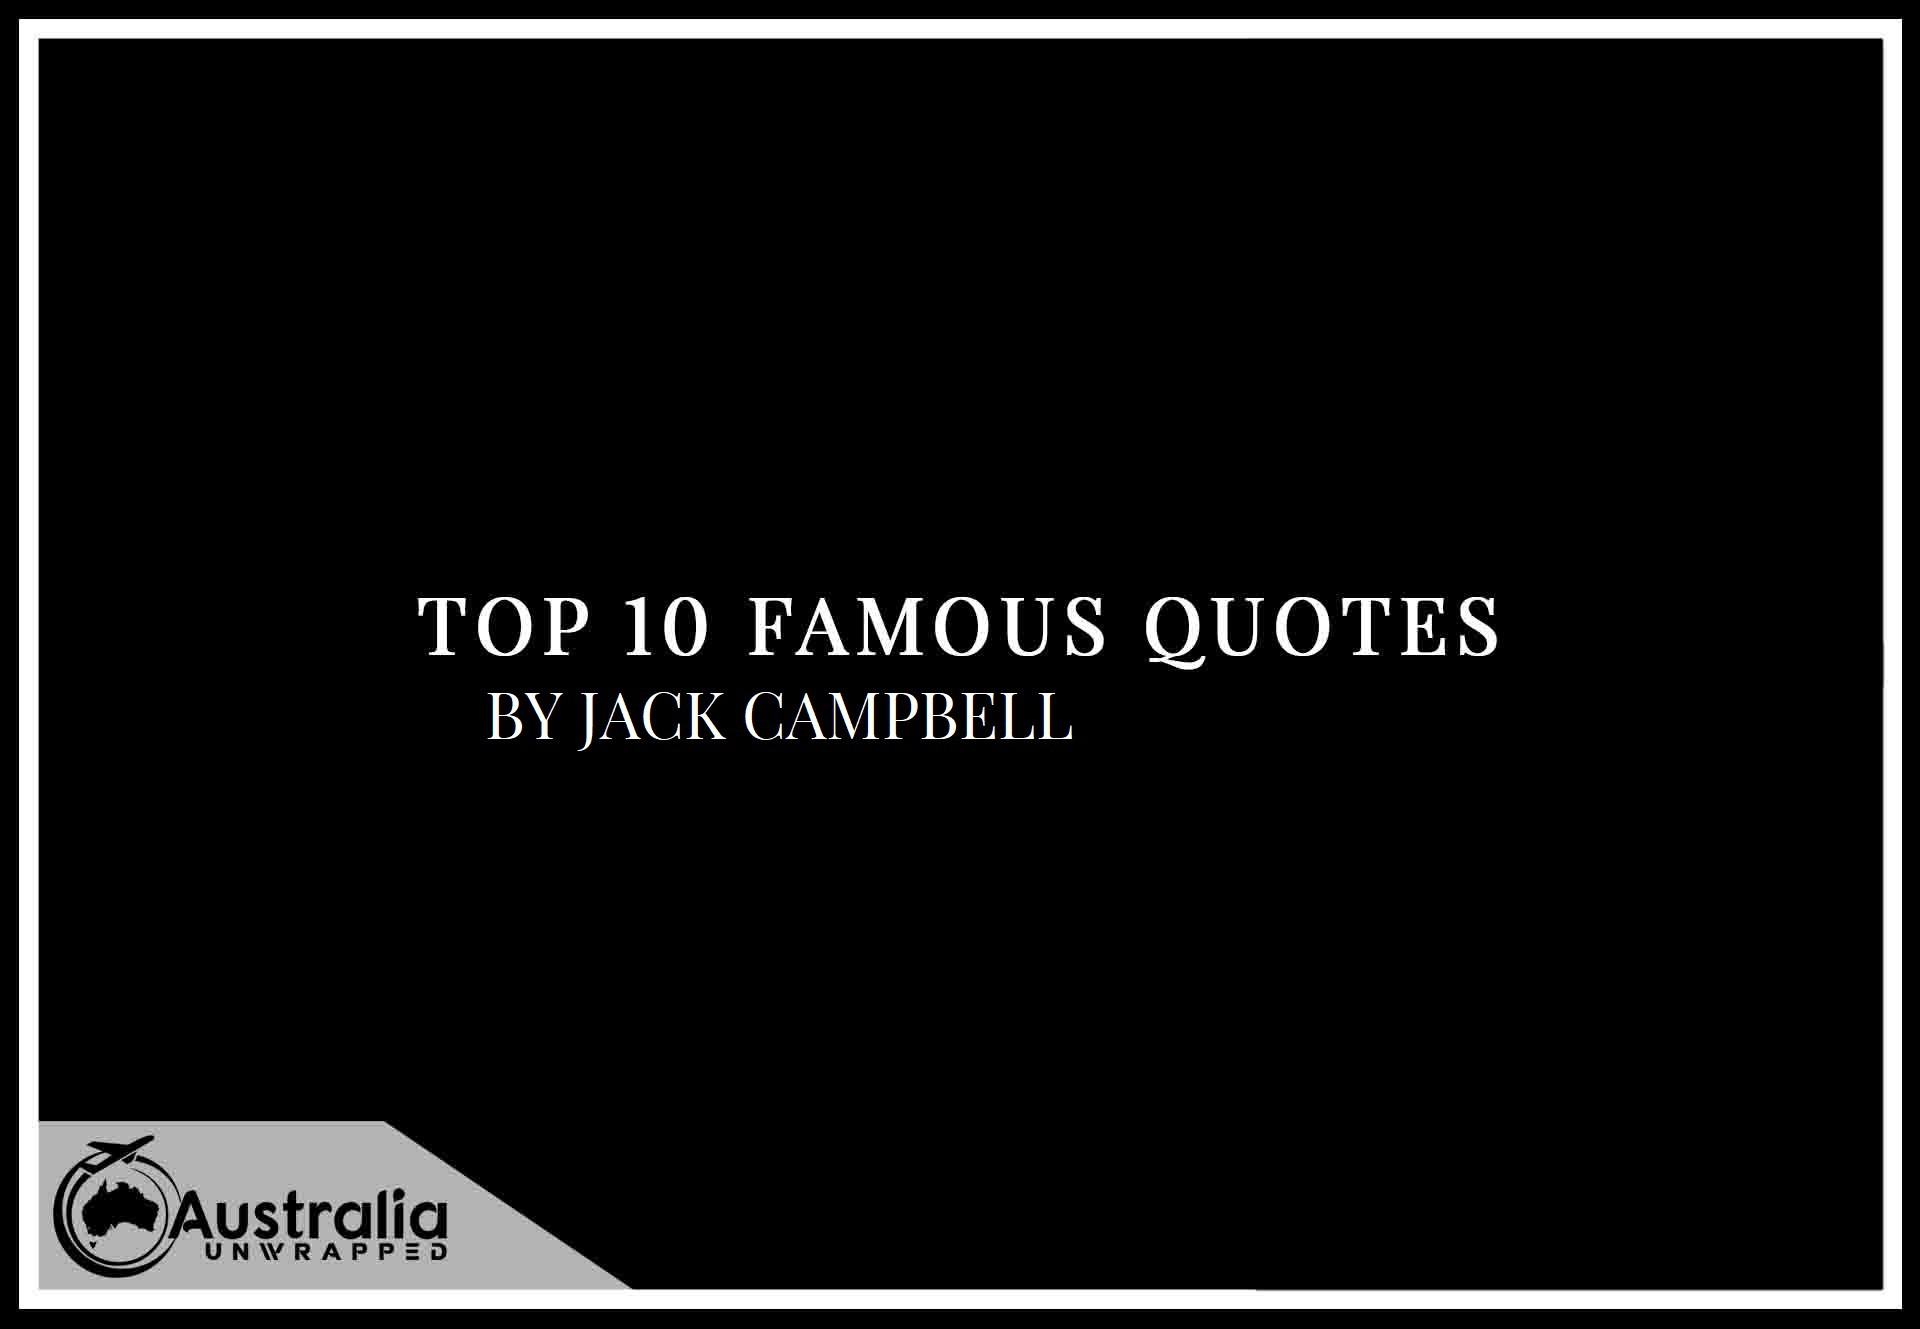 Top 10 Famous Quotes by Author Jack Campbell